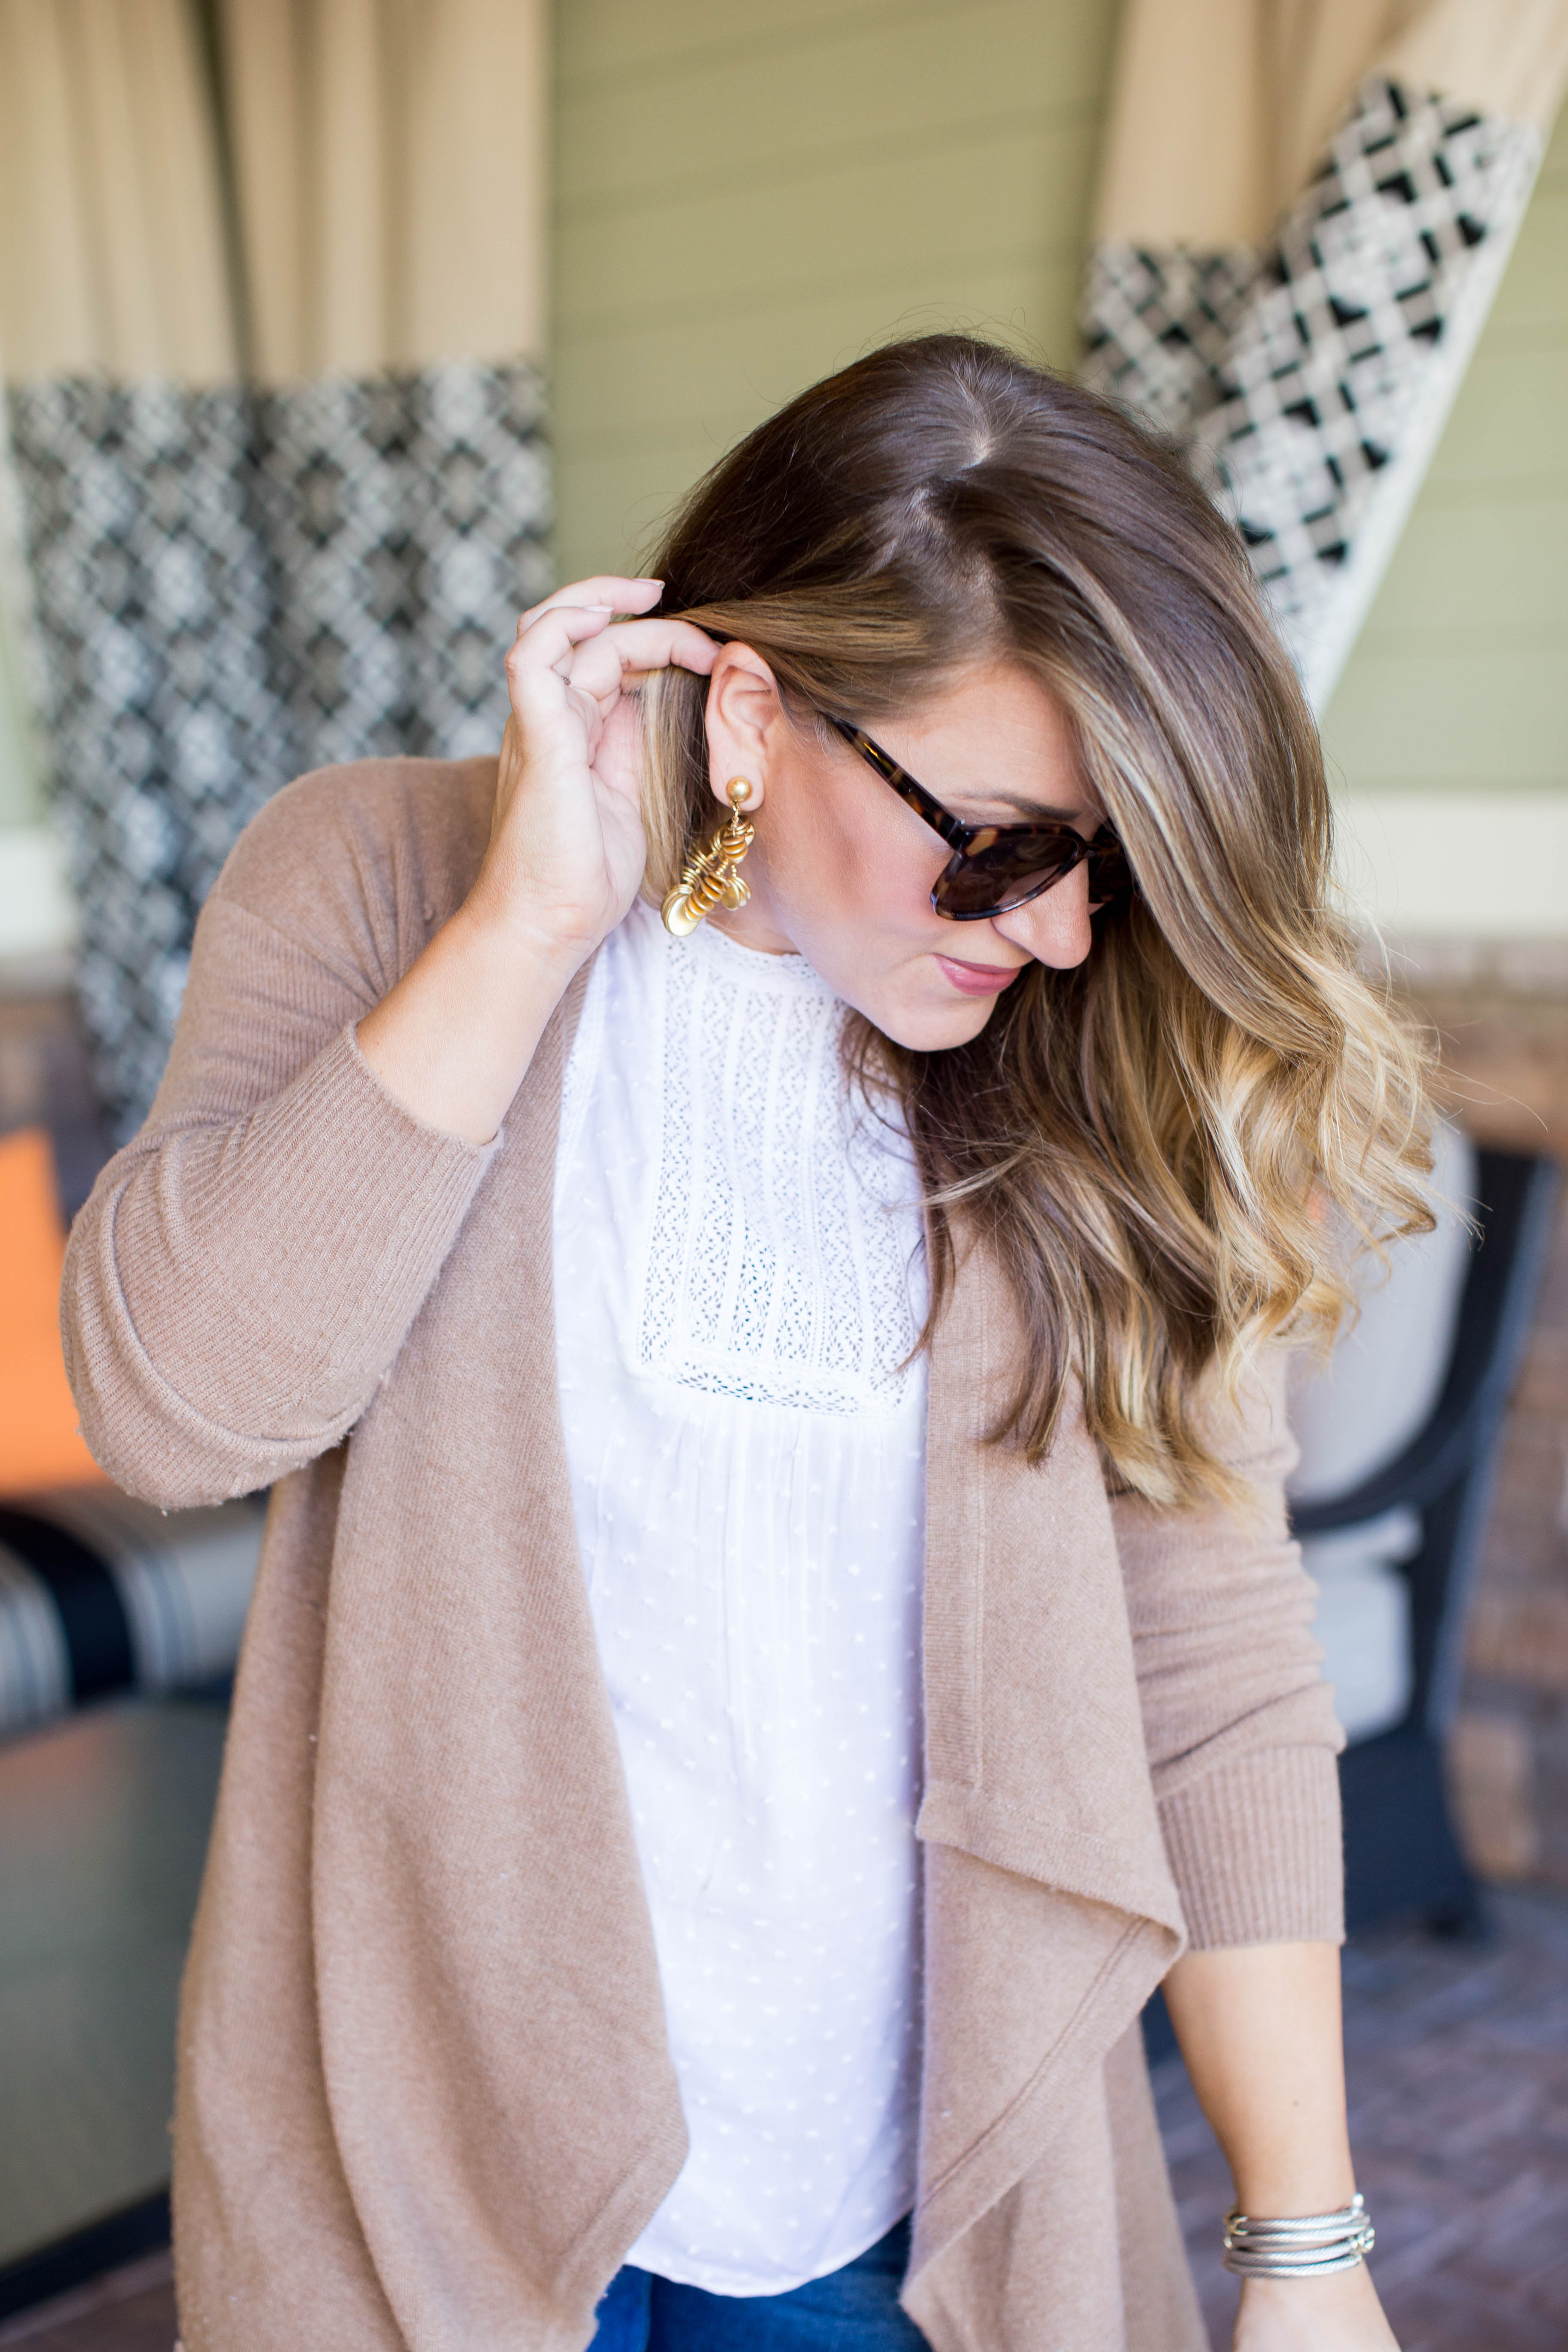 Long Line Cardigan for Fall - Camel Long Line Cardigan by NC fashion blogger Coffee Beans and Bobby Pins